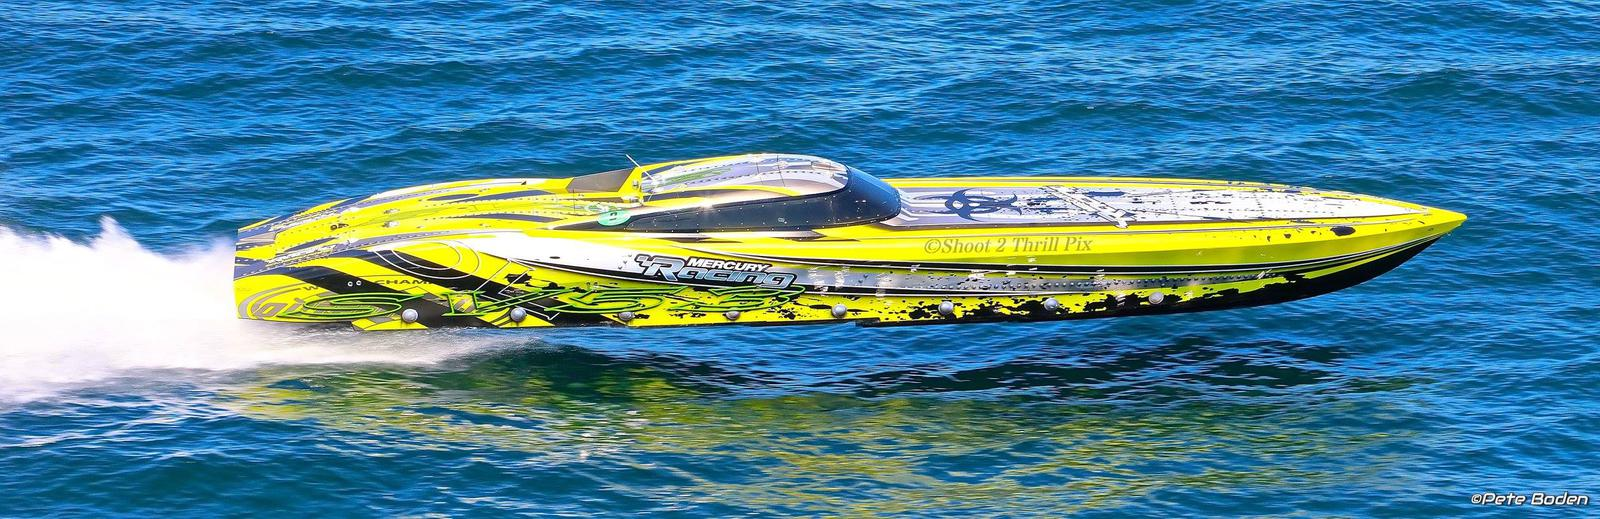 Outerlimits Offshore Powerboats SV52 for sale in Kimball, MI